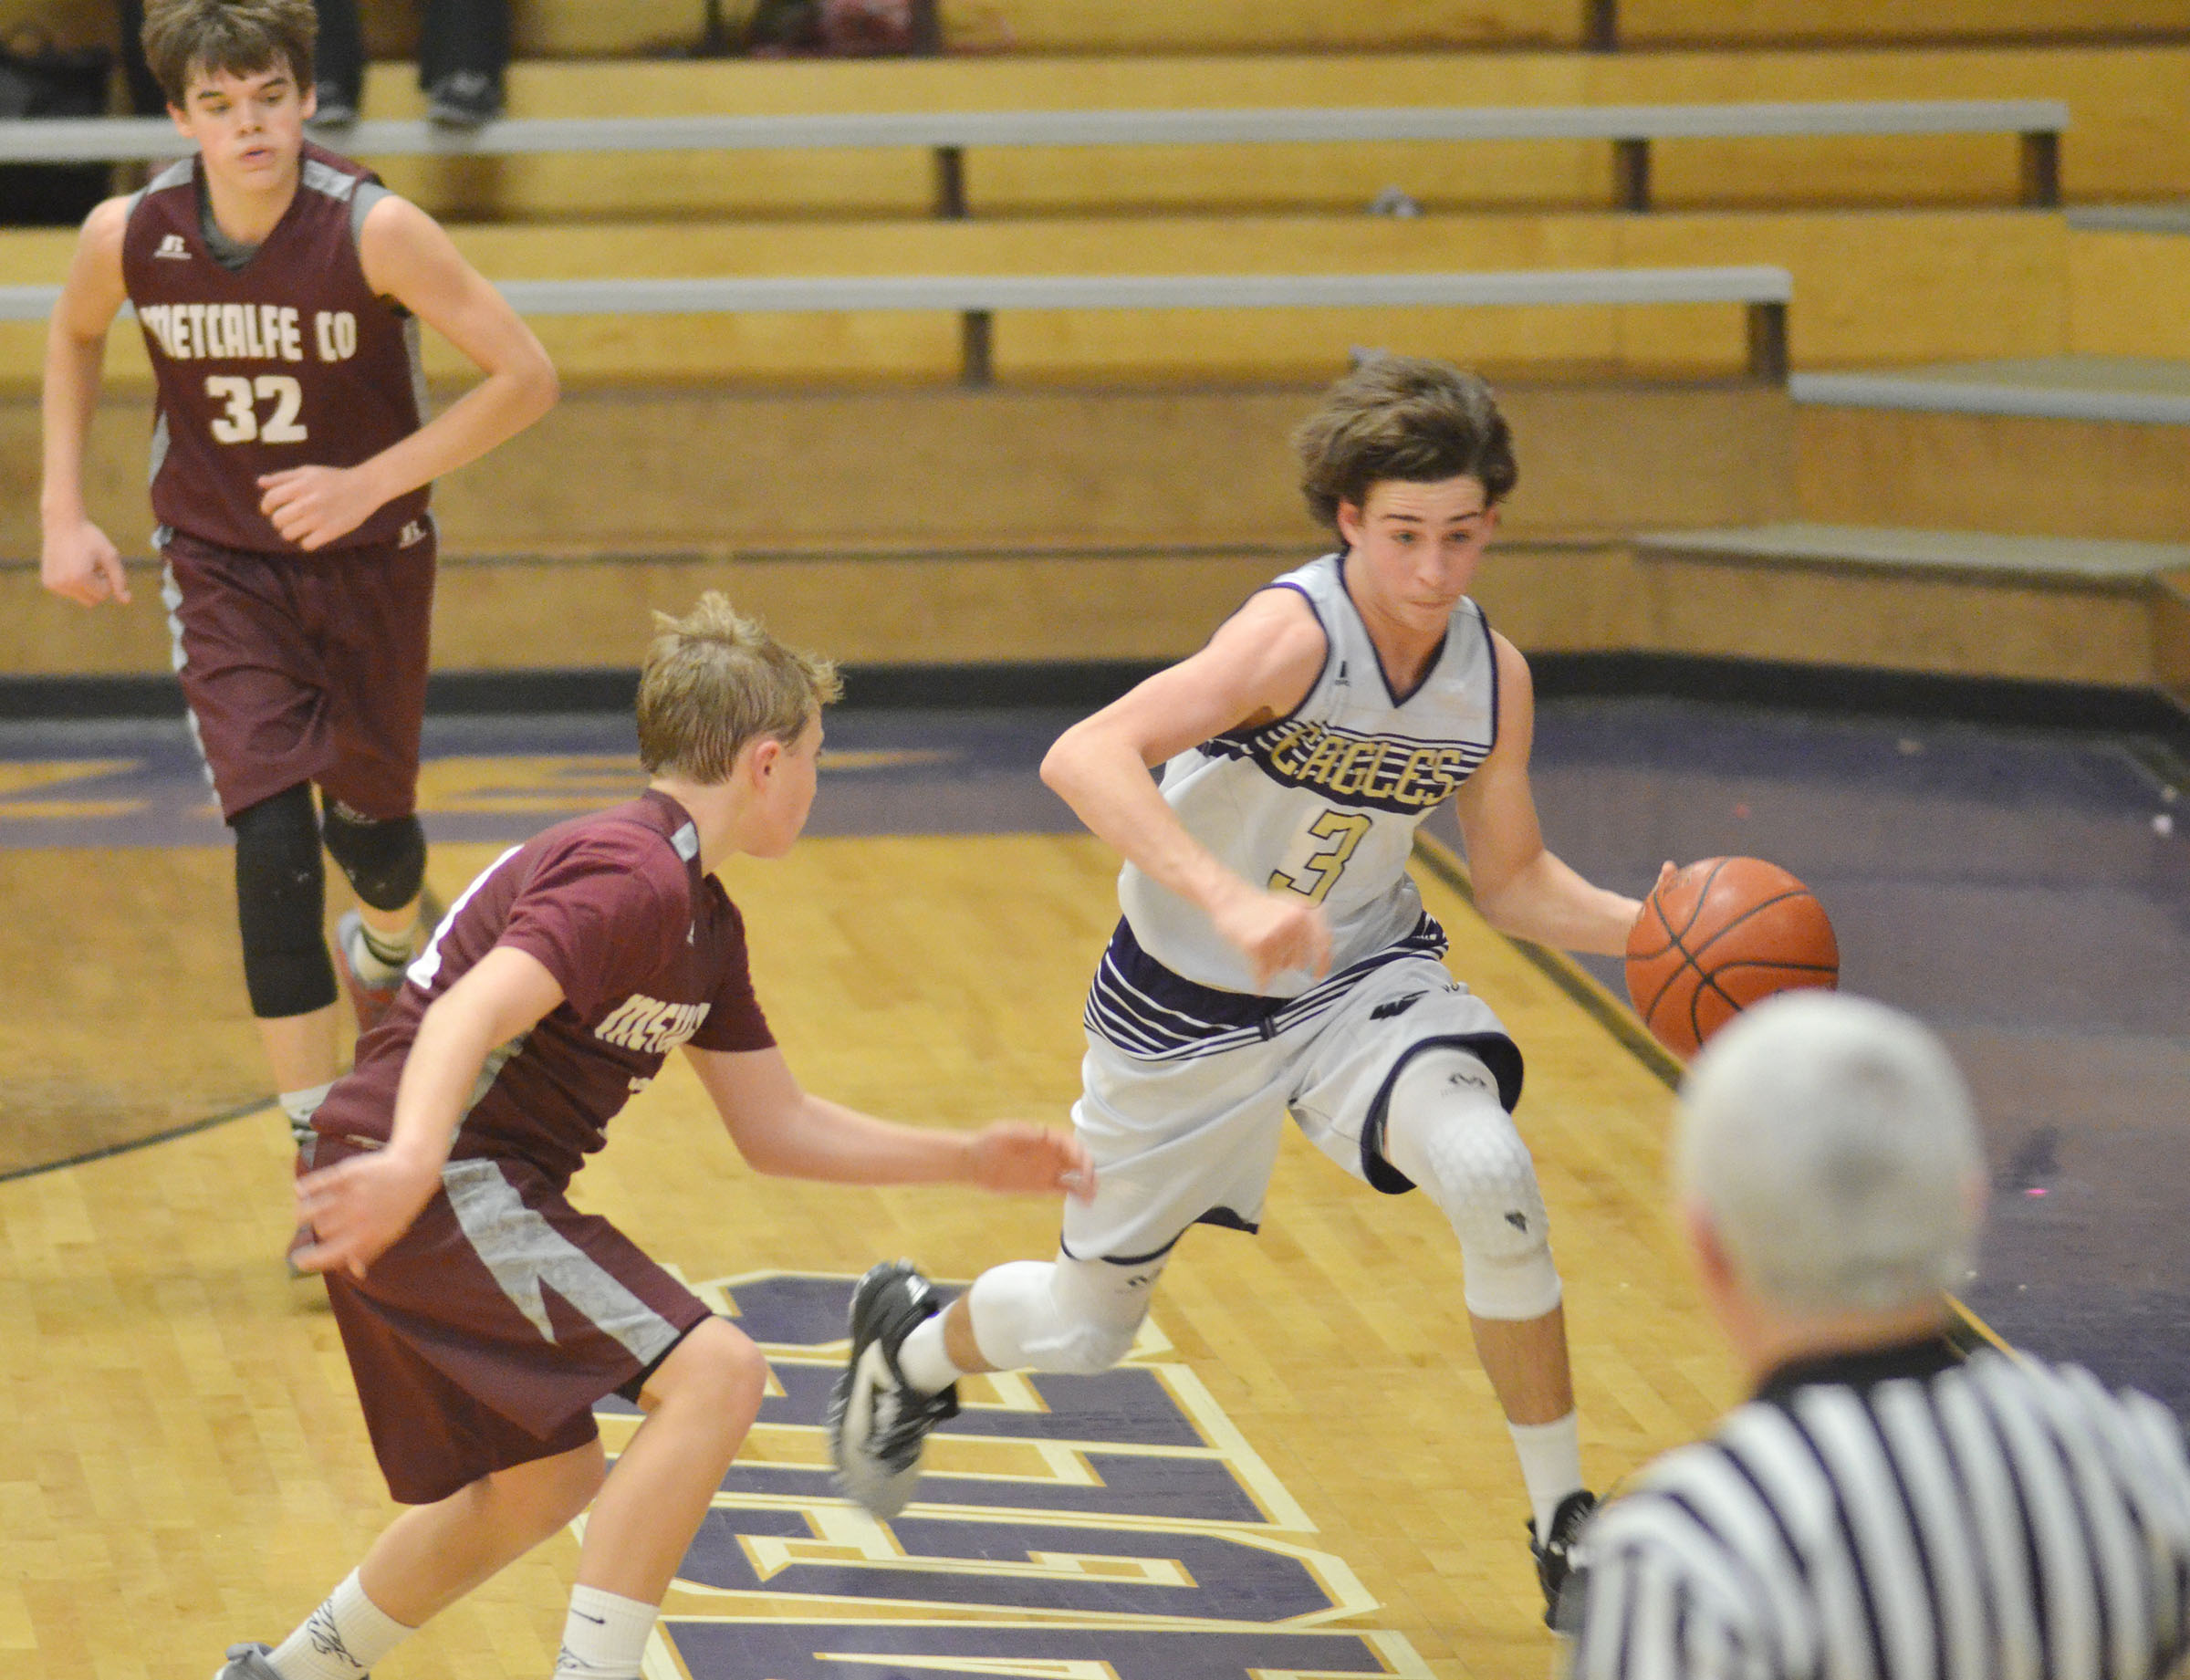 CMS eighth-grader John Orberson dribbles around a Metcalfe County defender.